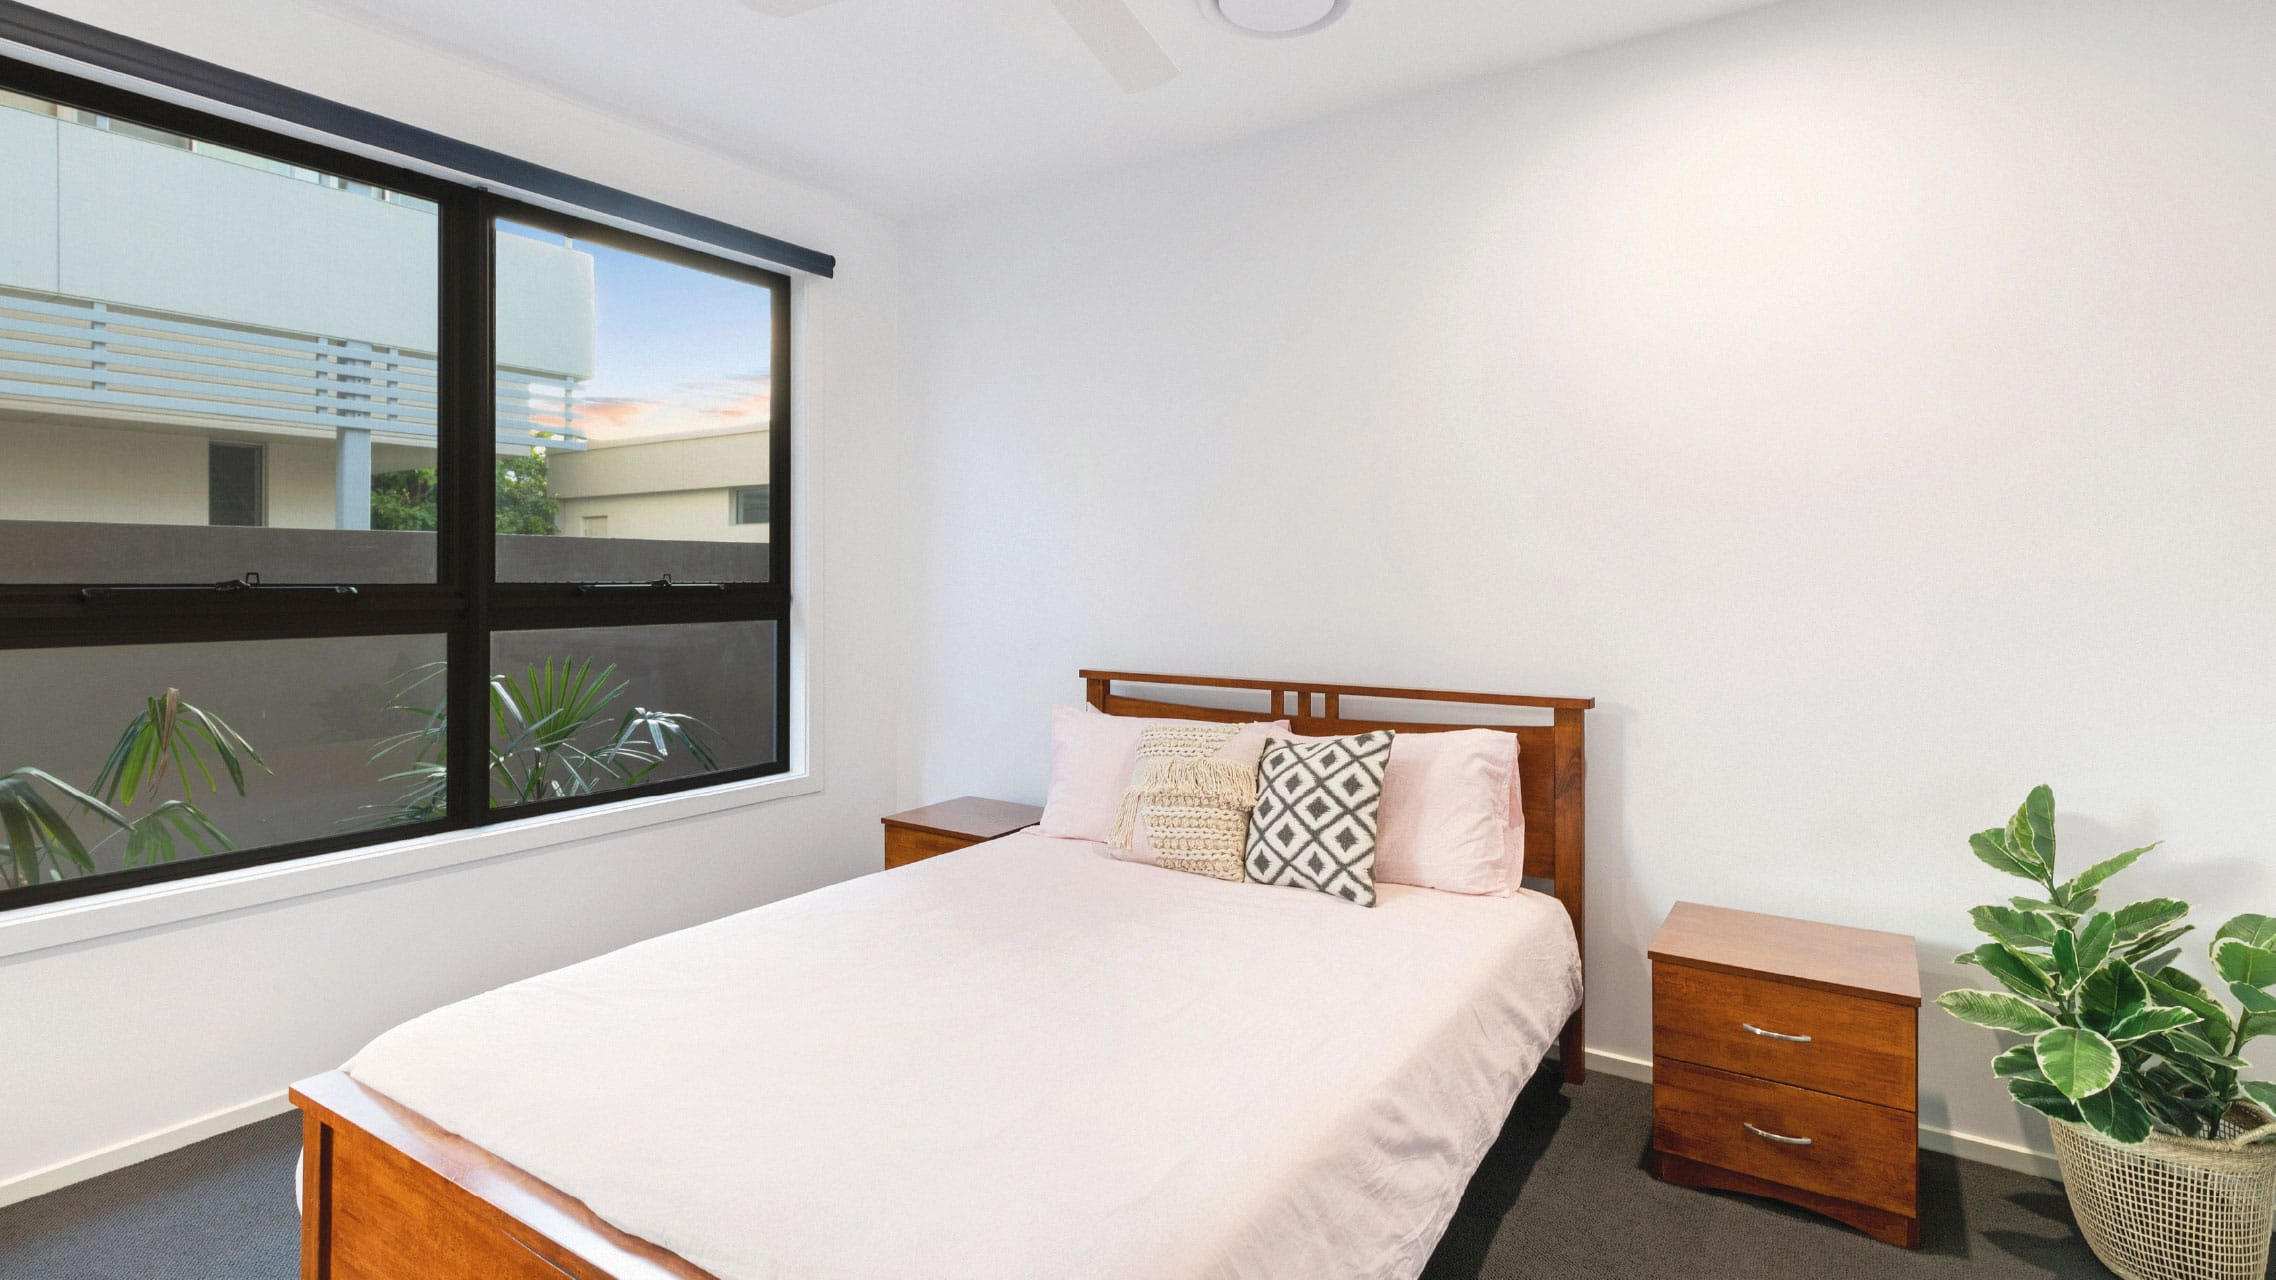 Aluminium awning windows with low lites in a bedroom